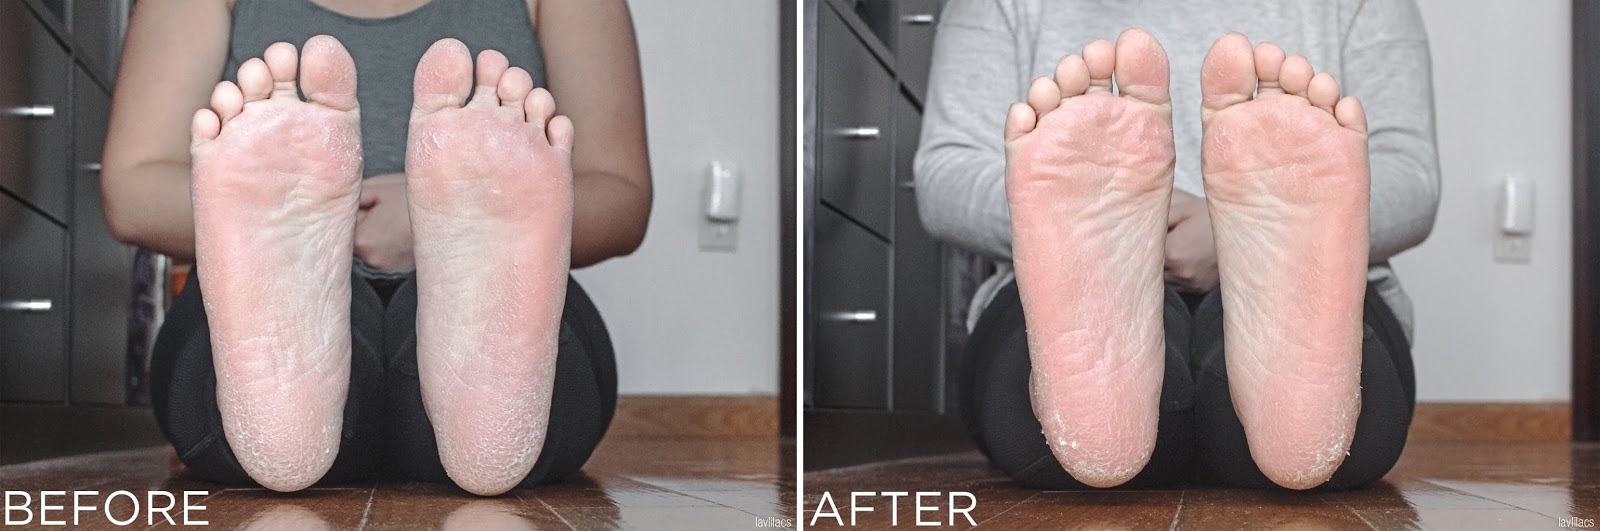 lavlilacs It'S SKIN Self Care Foot Peeling - Before and After